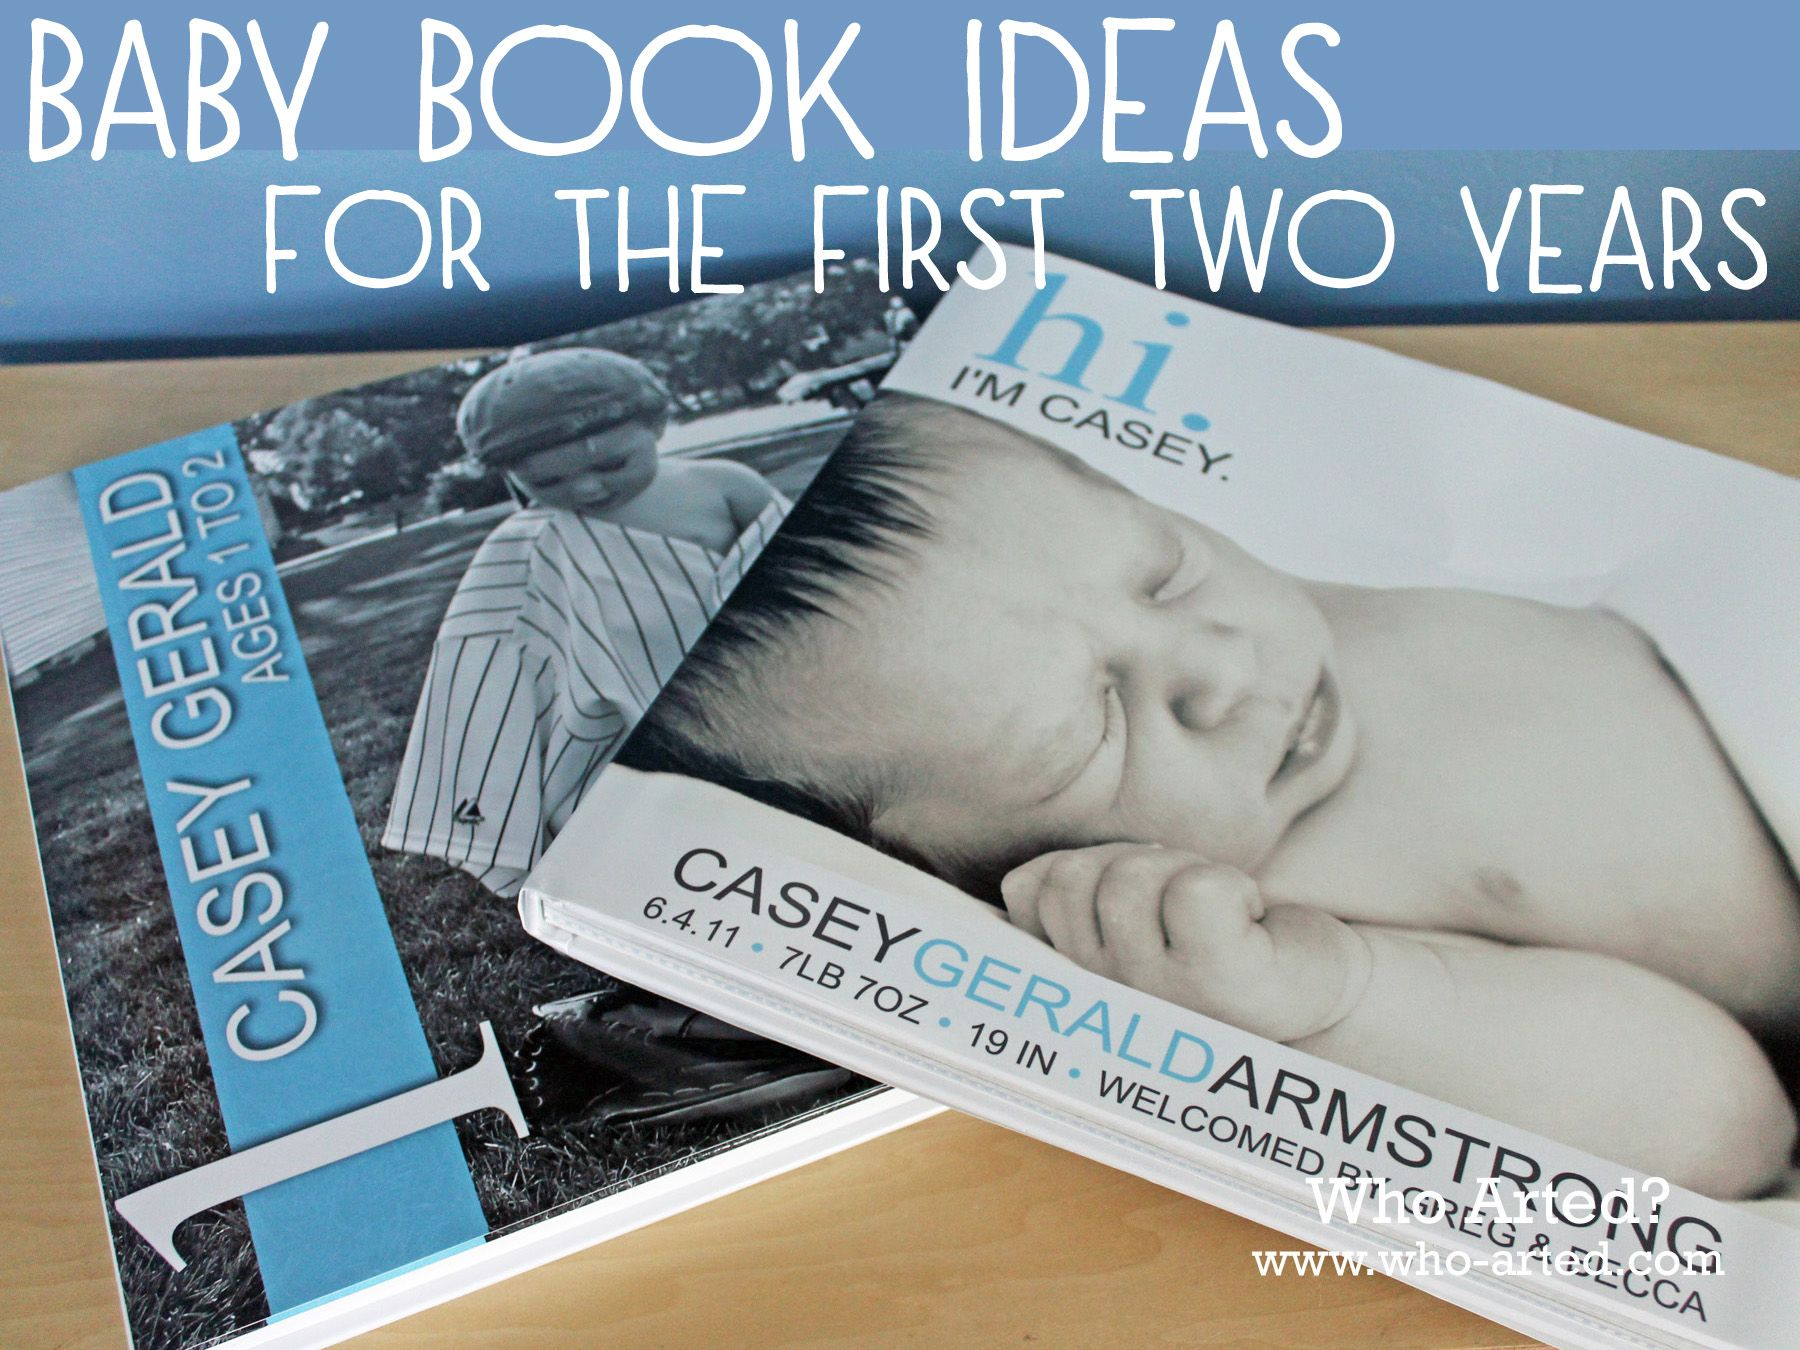 Baby Book Ideas for the first two years! Great ideas and suggestions!